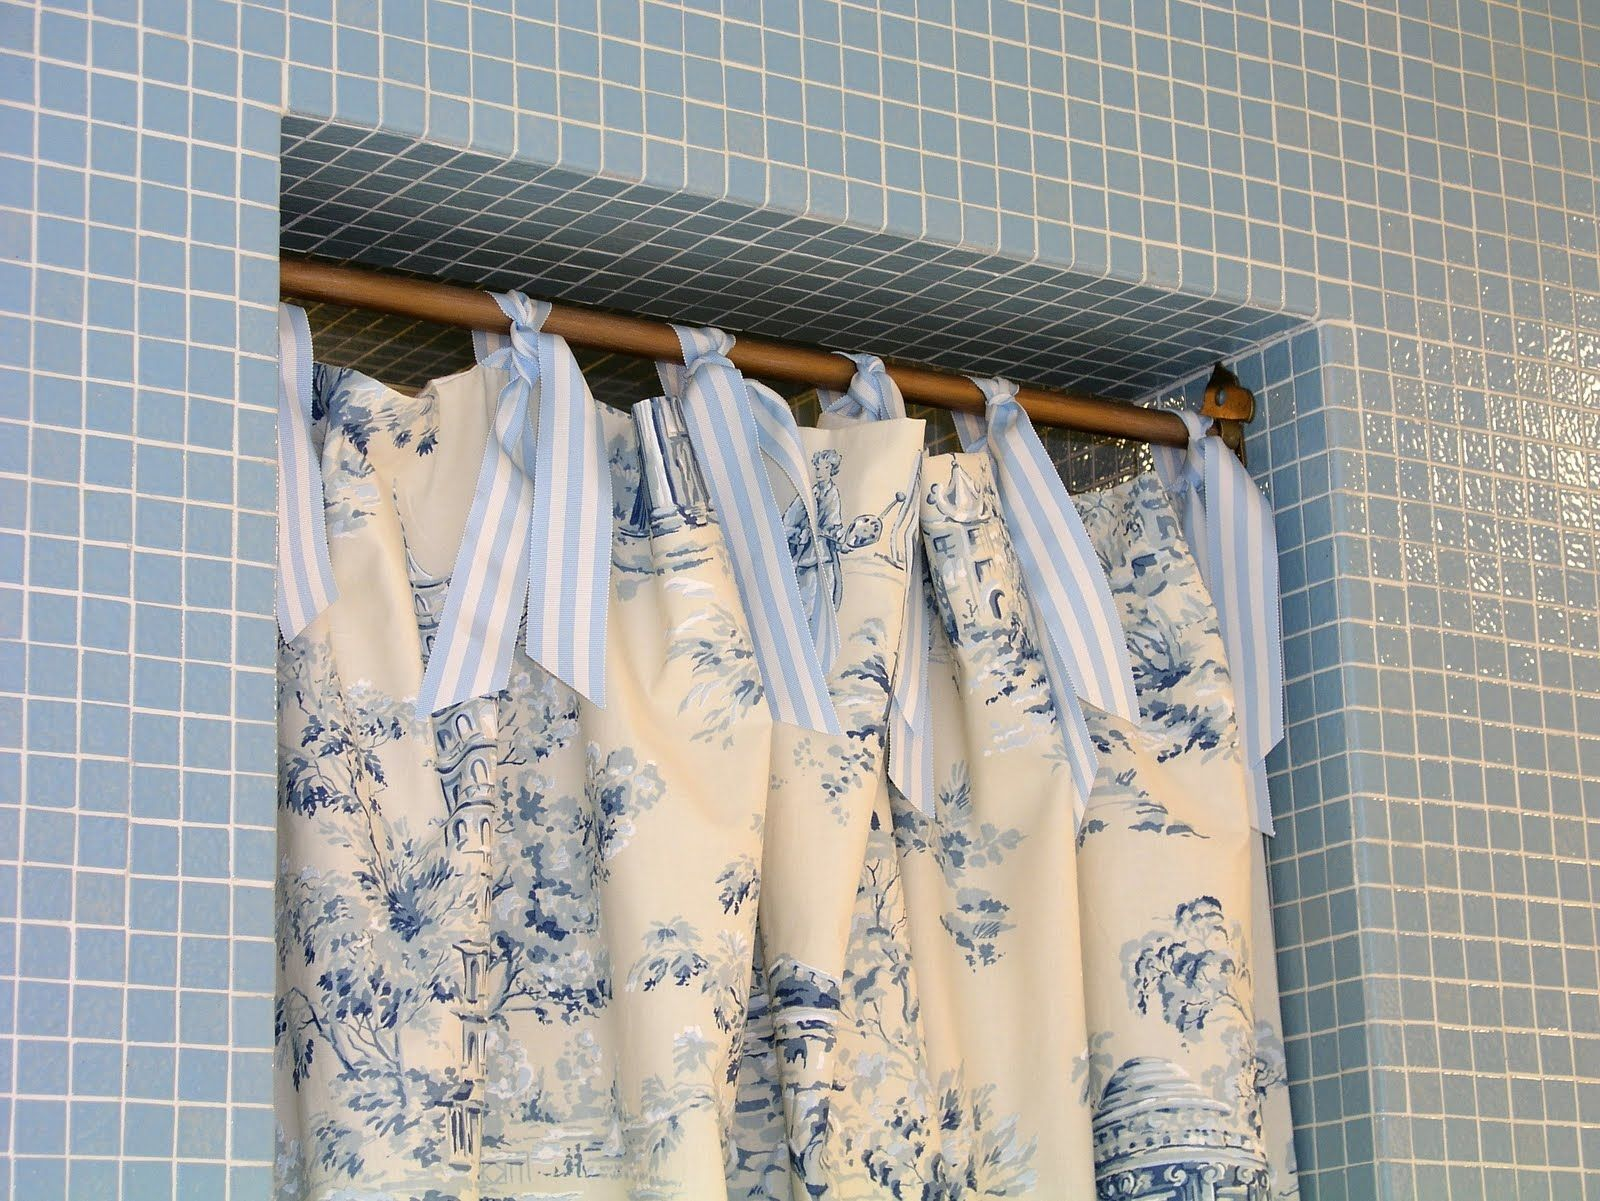 Navy Blue Toile Shower Curtain Gone Are The Days When People